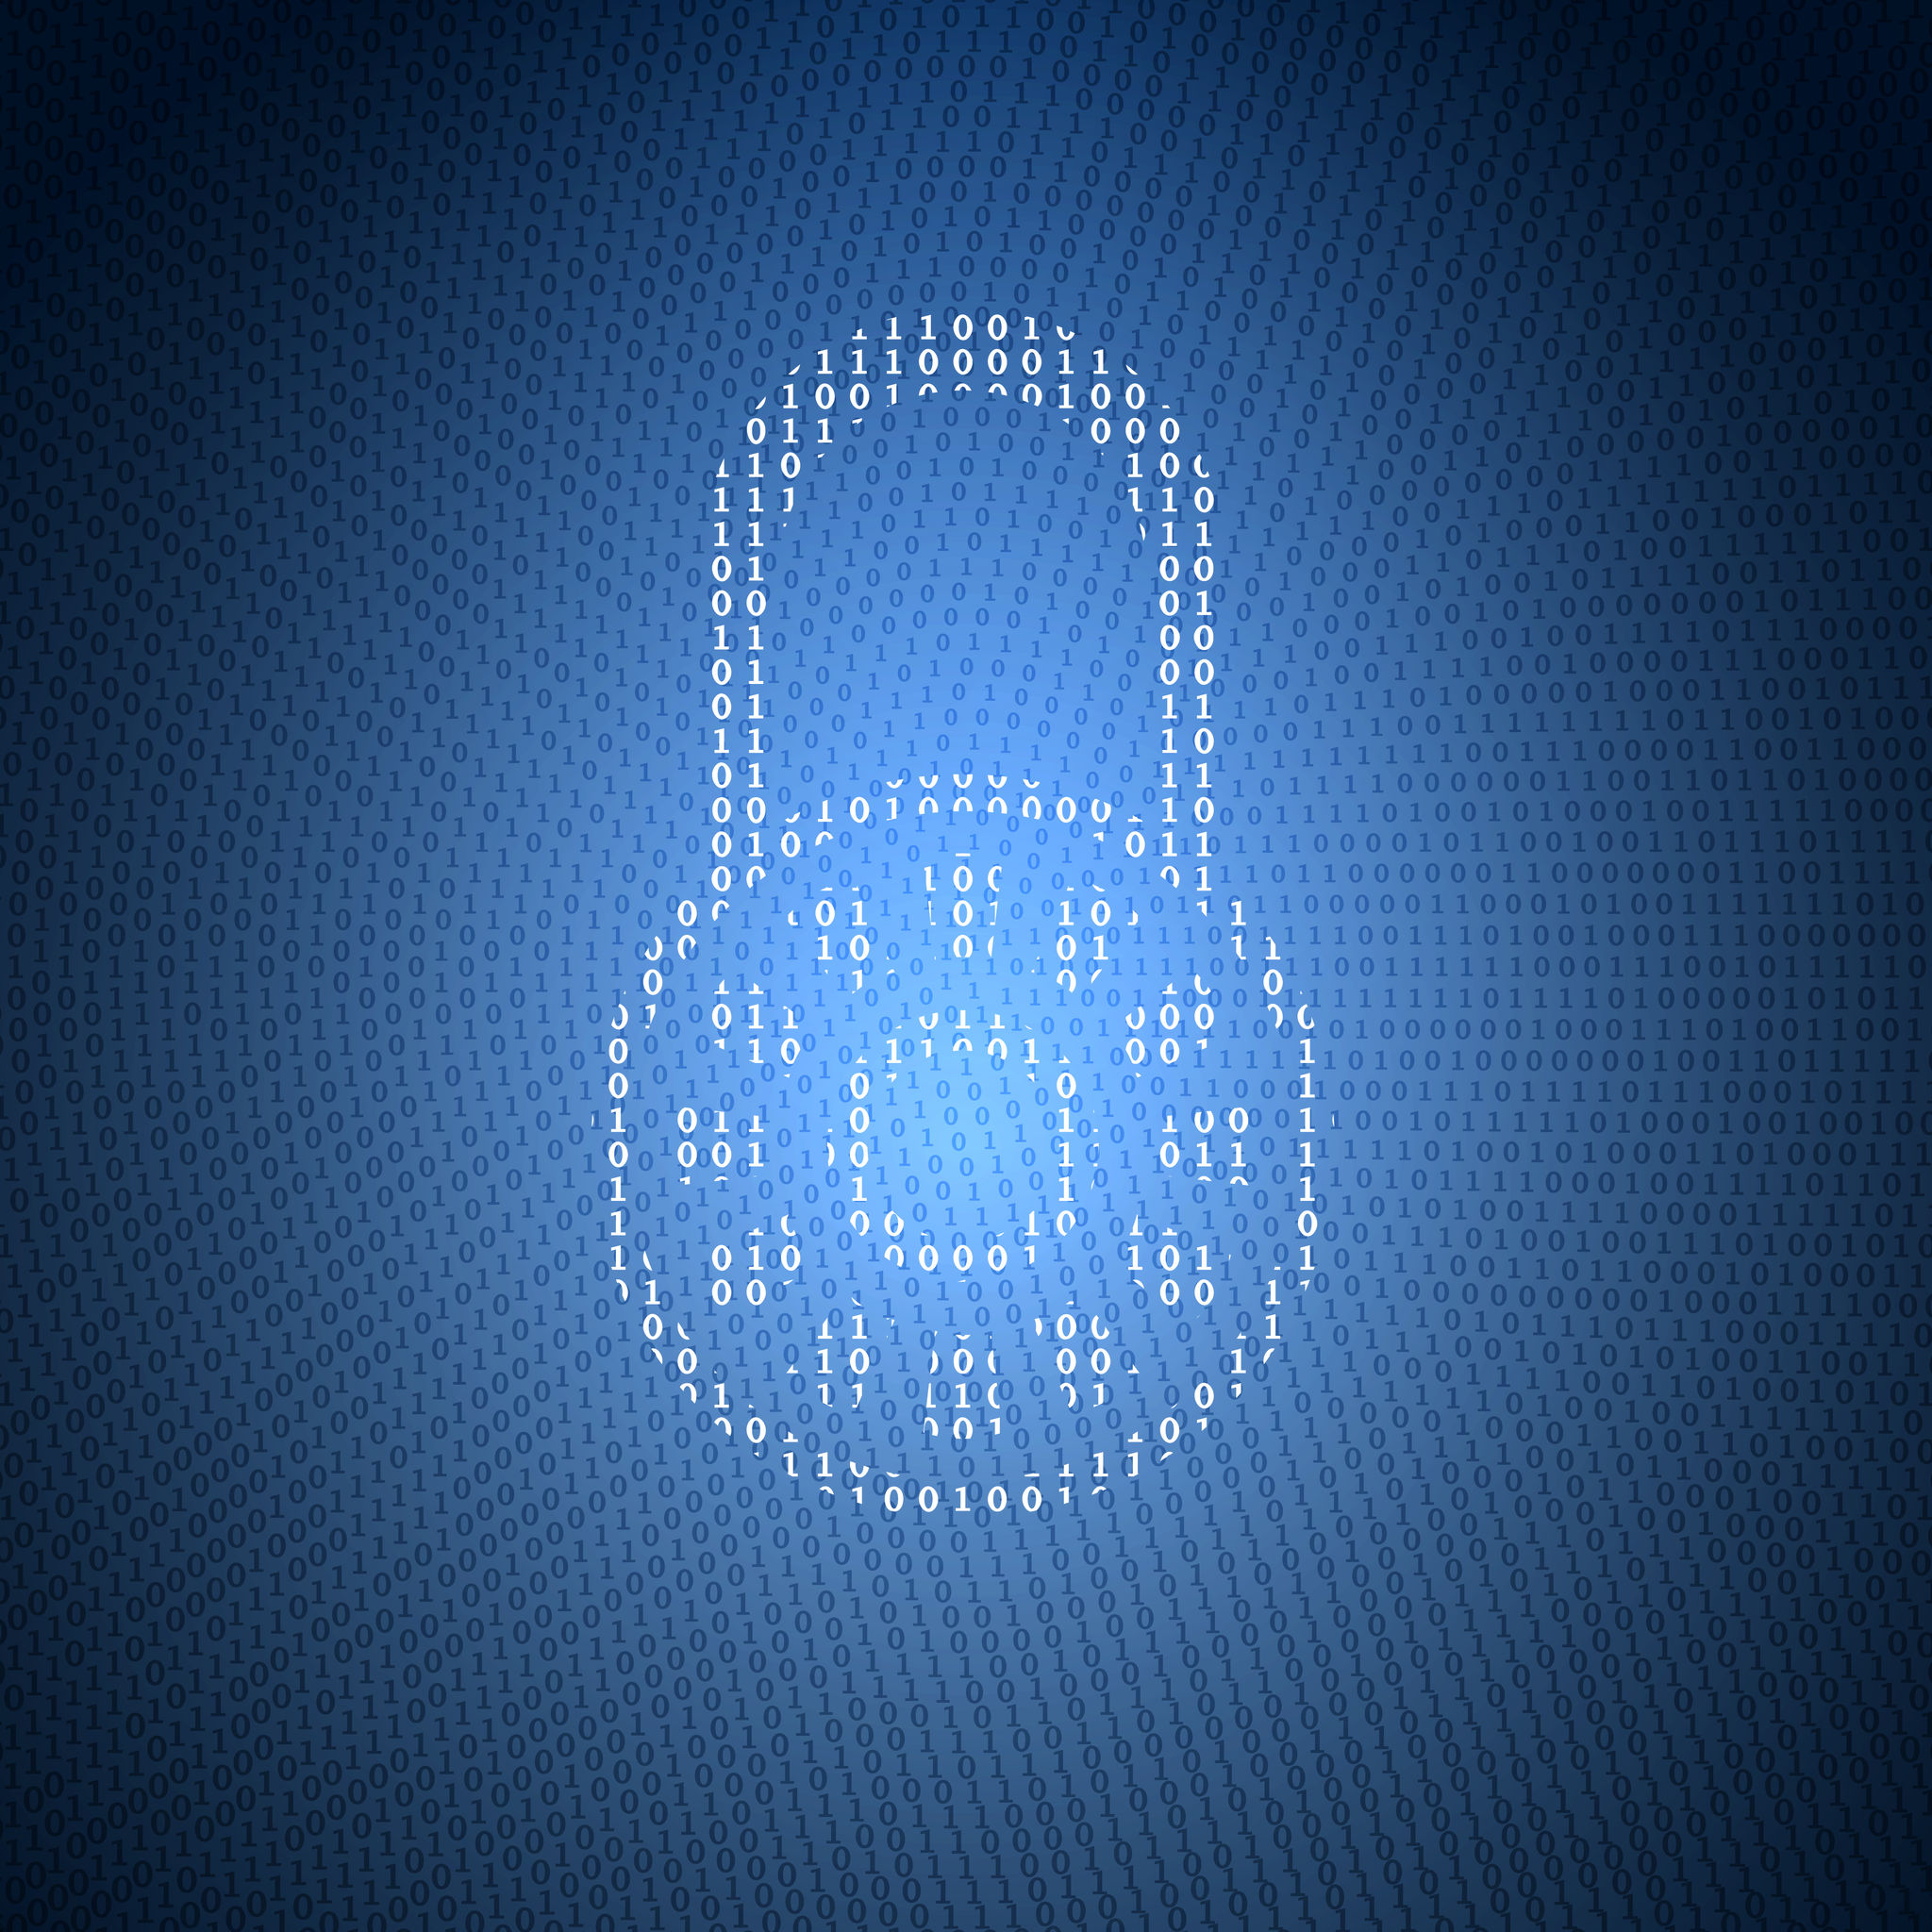 Image result for Entry Point Security